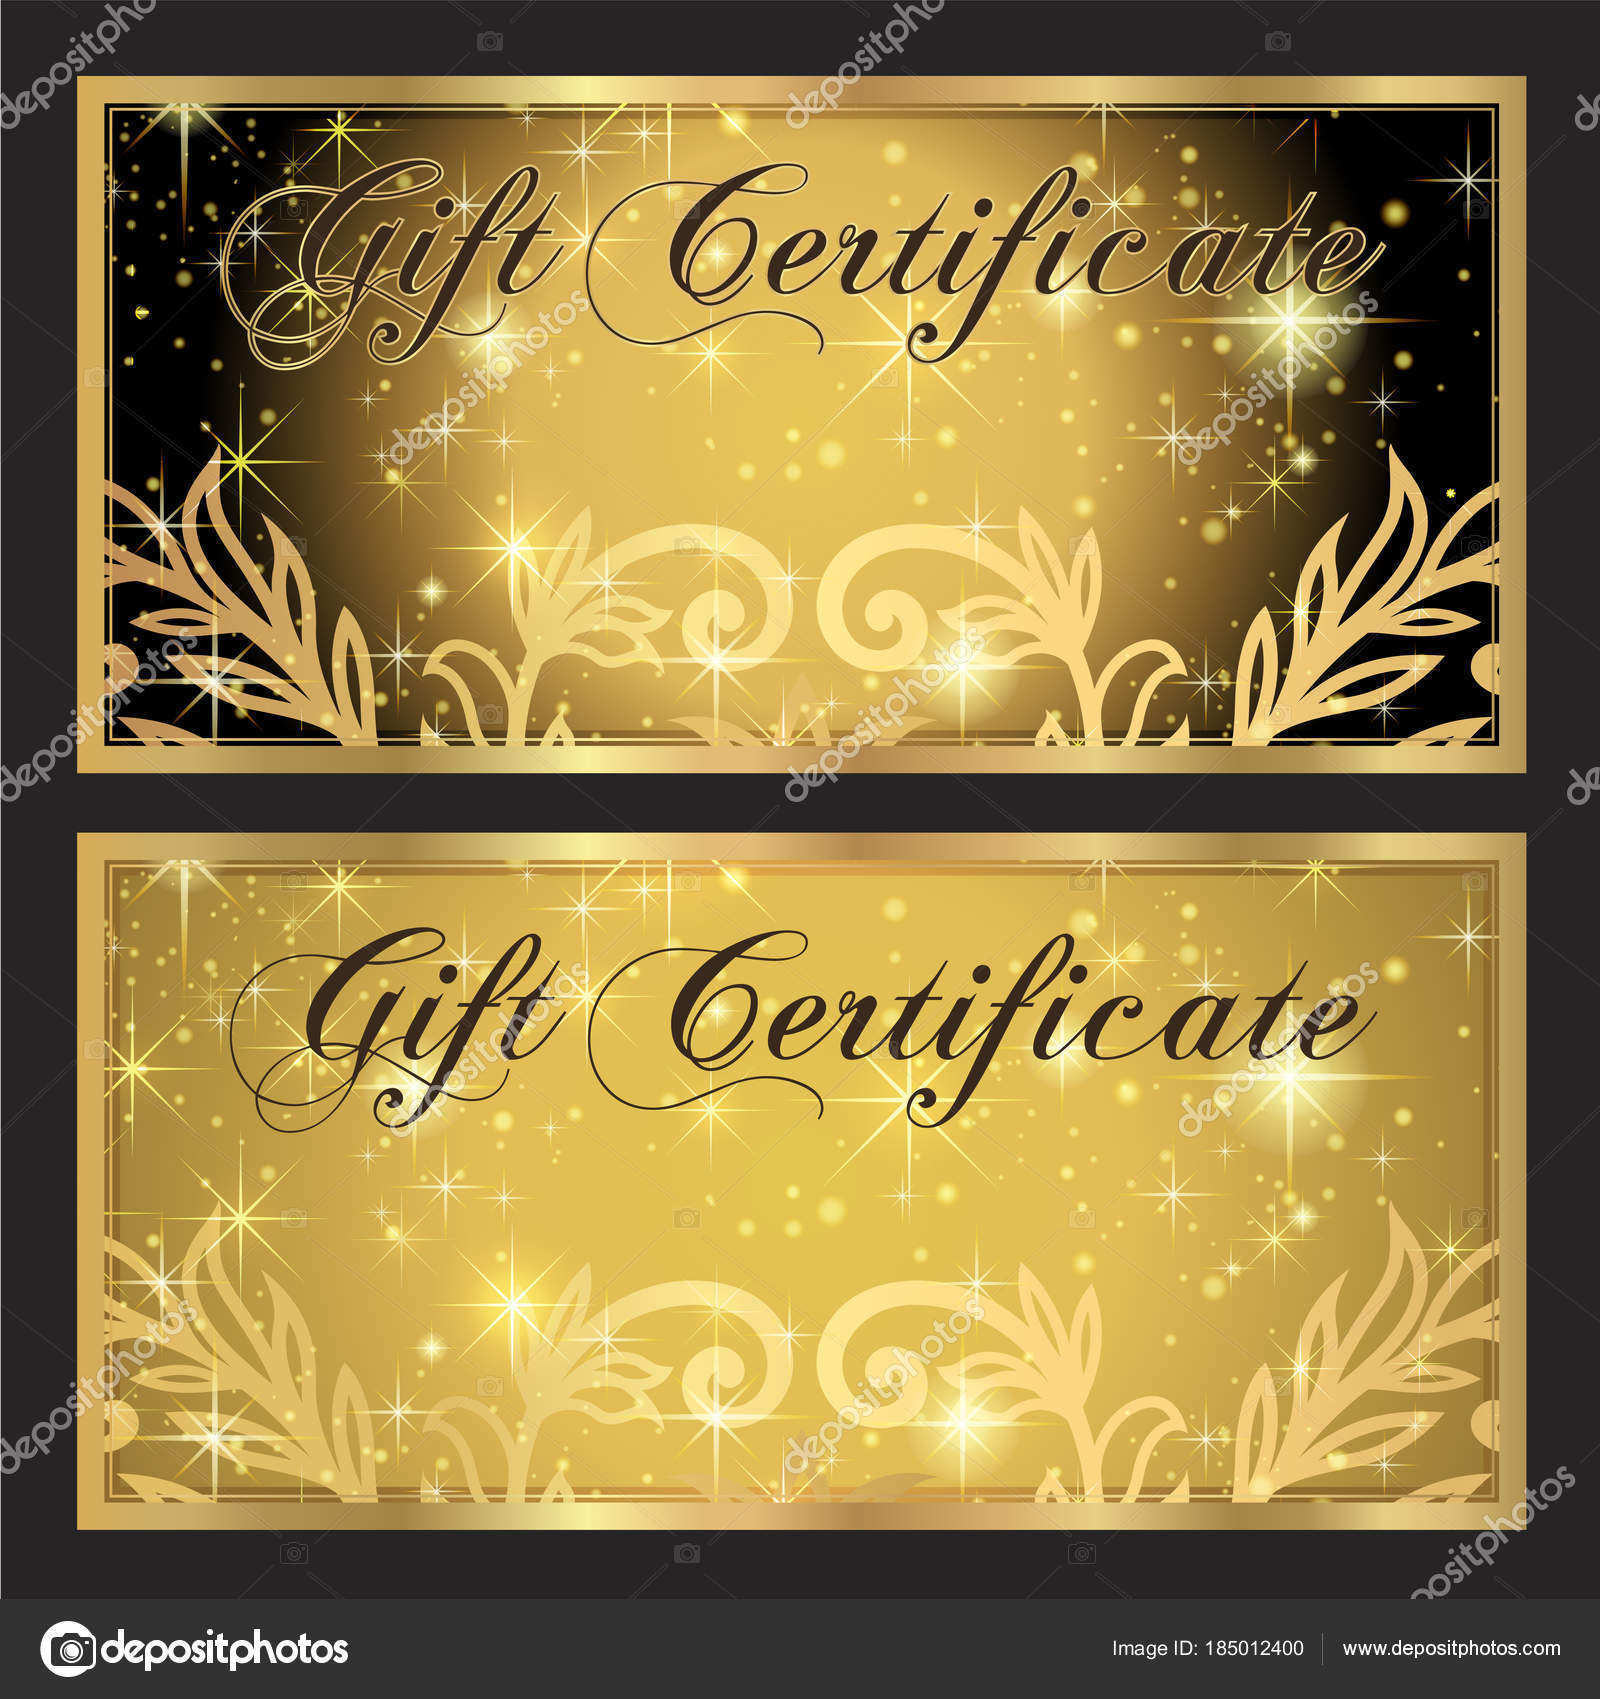 Voucher Gift Certificate Coupon Template Gold Black Background